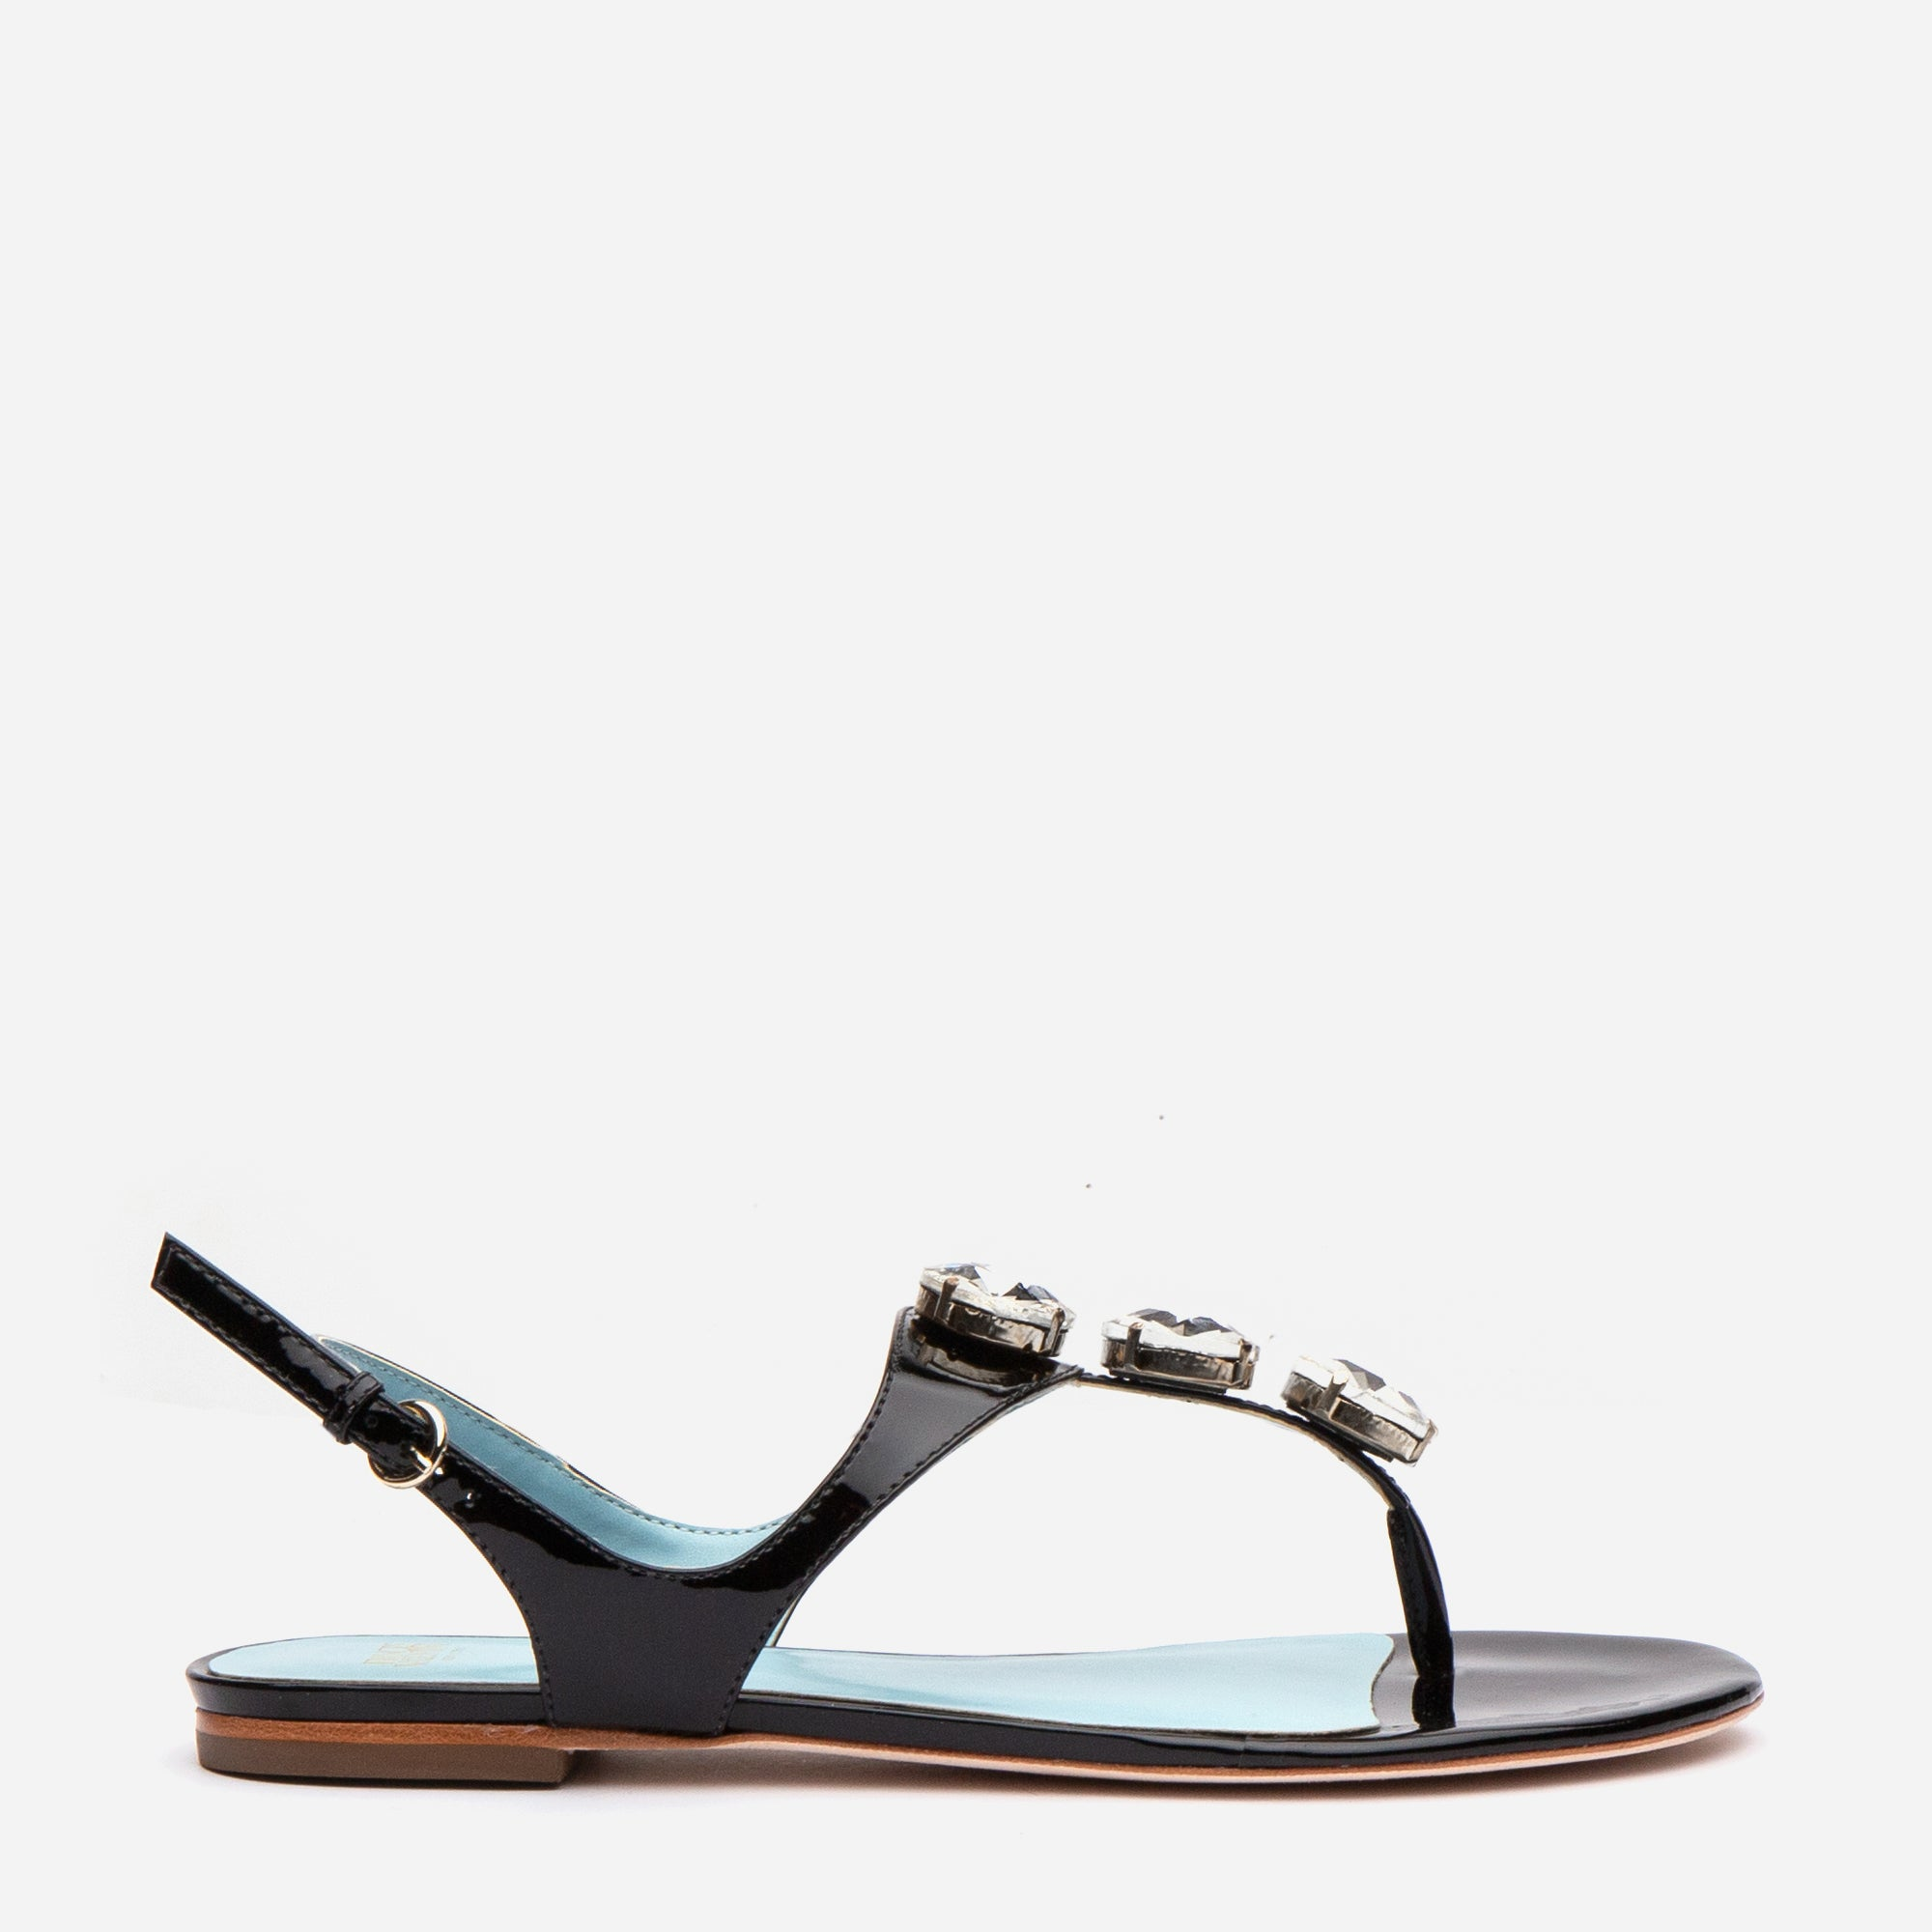 Victoria Jeweled Patent Sandal Black *FINAL SALE*